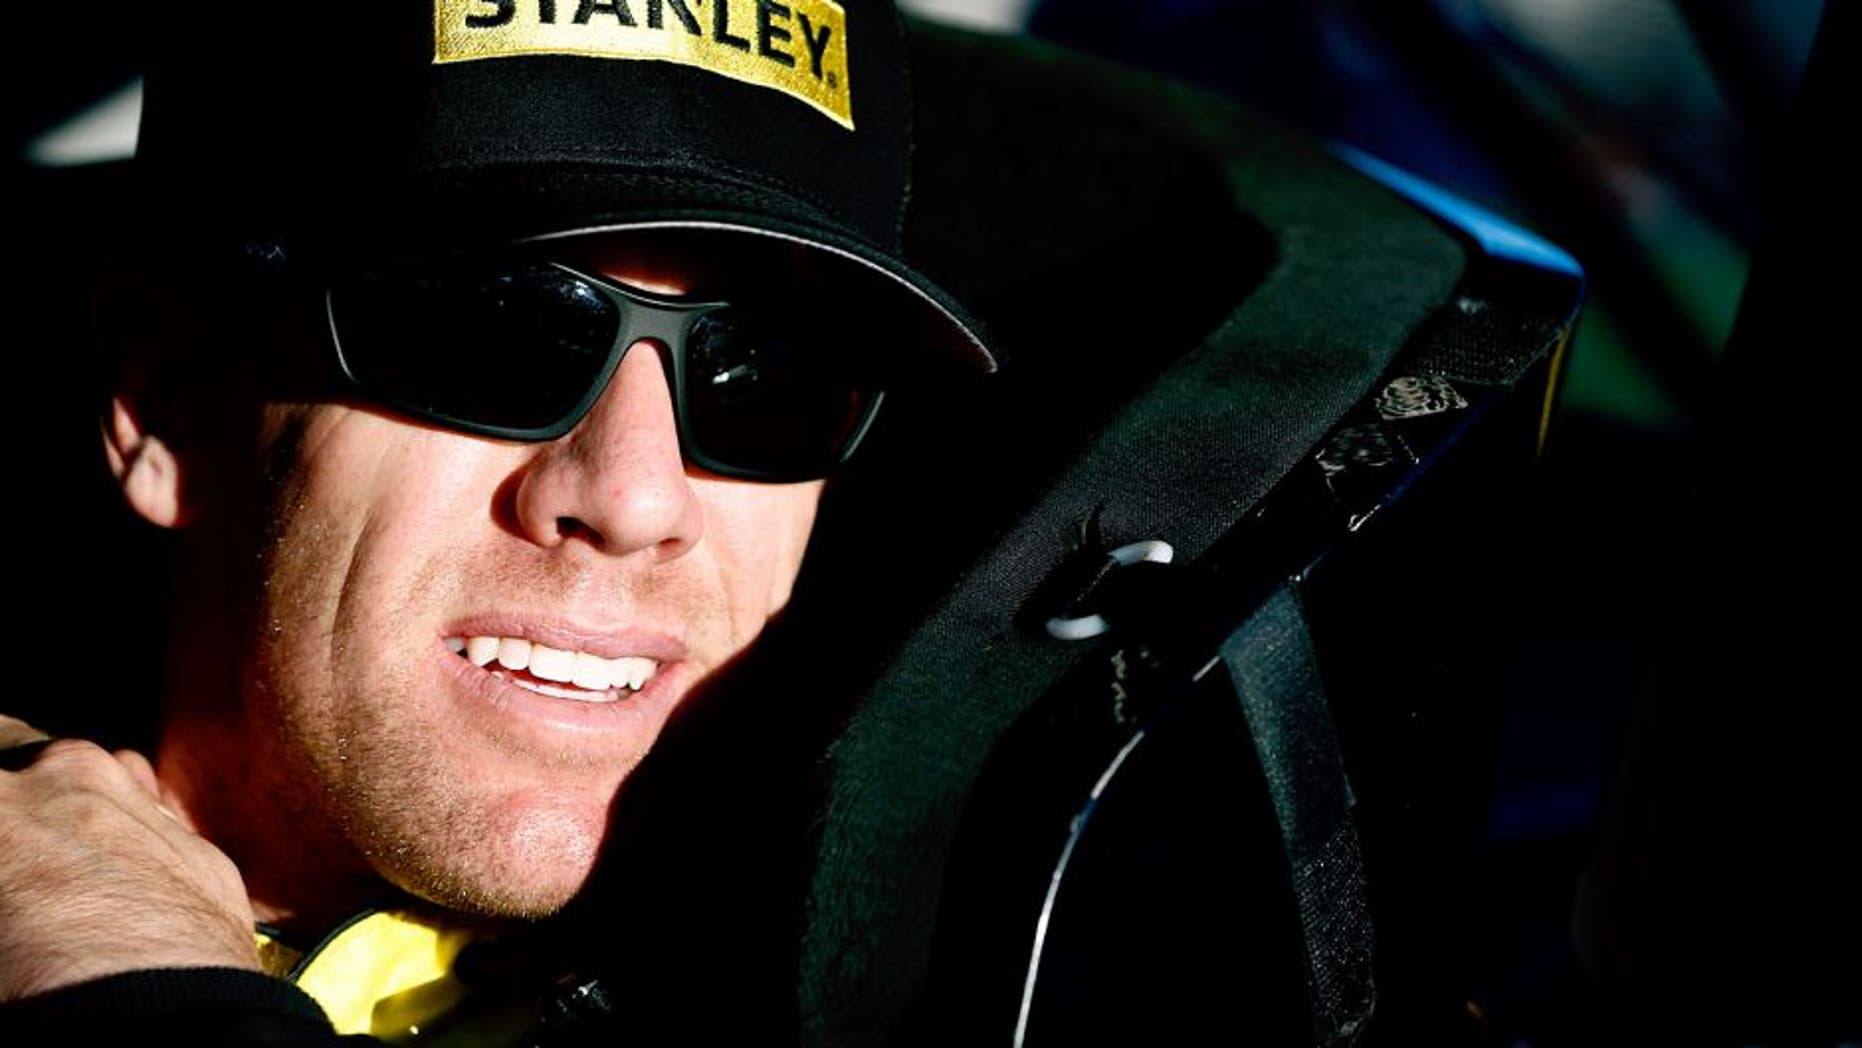 AVONDALE, AZ - NOVEMBER 13: Carl Edwards, driver of the #19 Stanley Toyota, sits in his car during qualifying for the NASCAR Sprint Cup Series Quicken Loans Race for Heroes 500 at Phoenix International Raceway on November 13, 2015 in Avondale, Arizona. (Photo by Jeff Zelevansky/NASCAR via Getty Images)